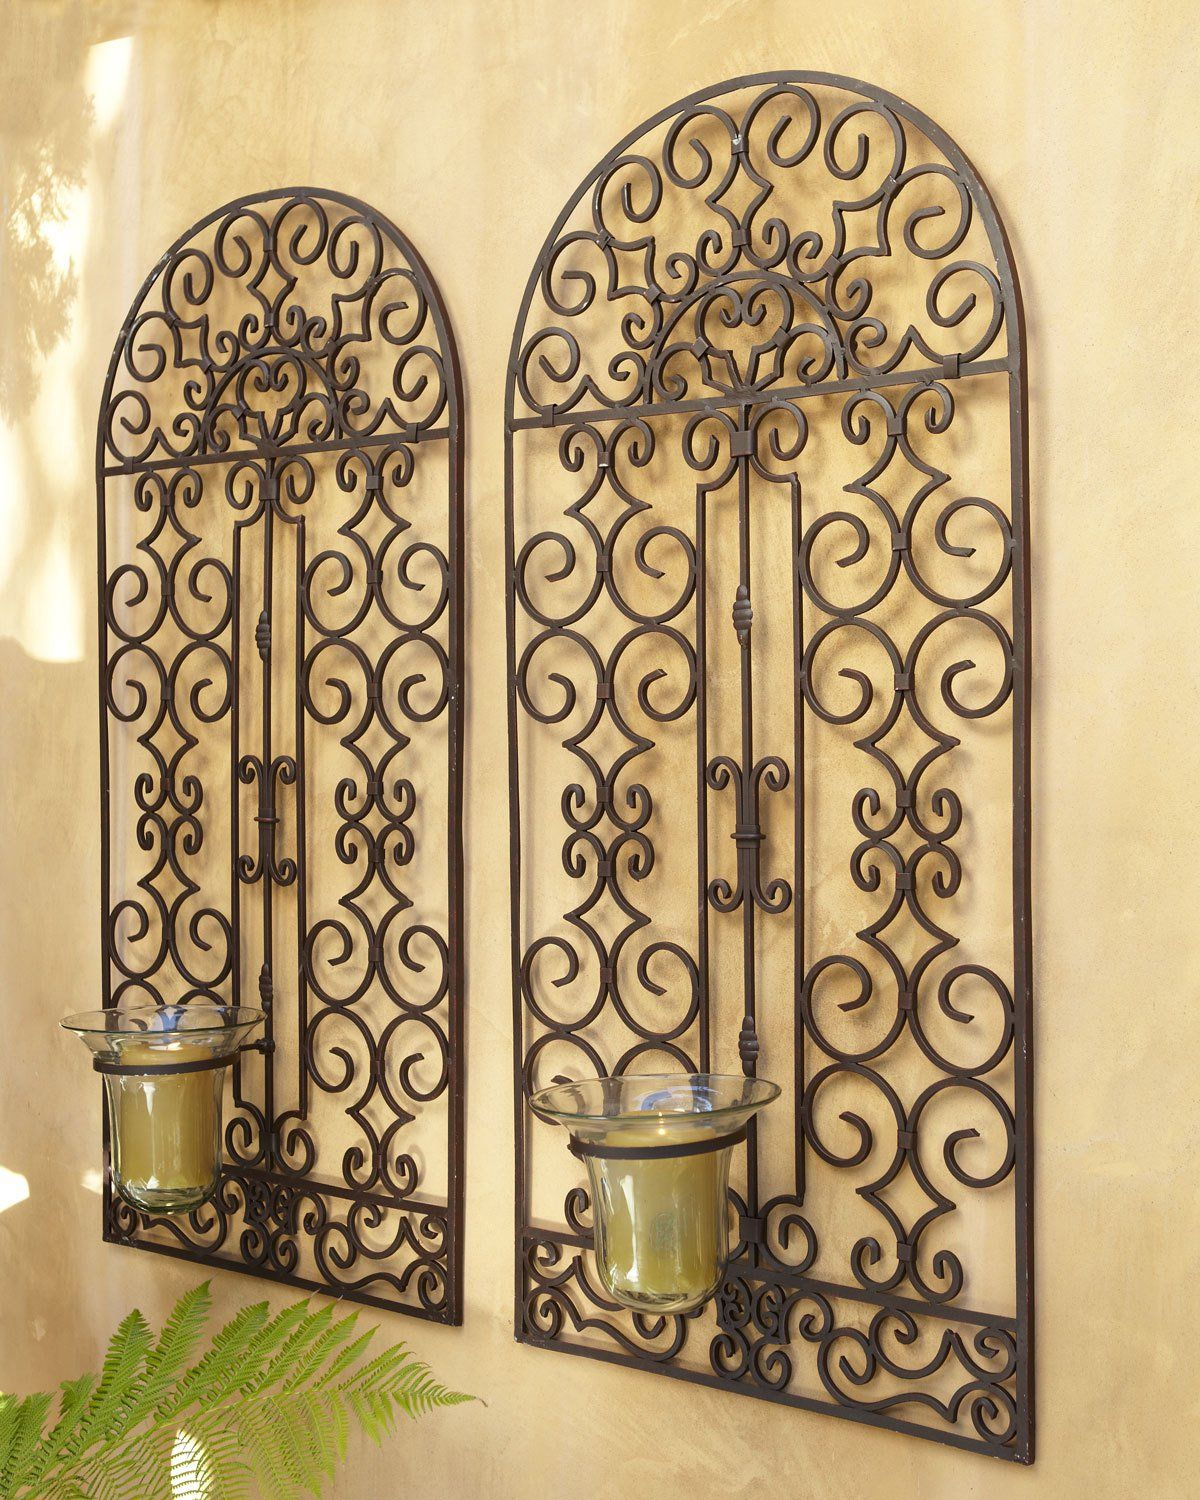 Outdoor Hurricane Wall Panel | Pinterest | Walls, Wrought iron and ...